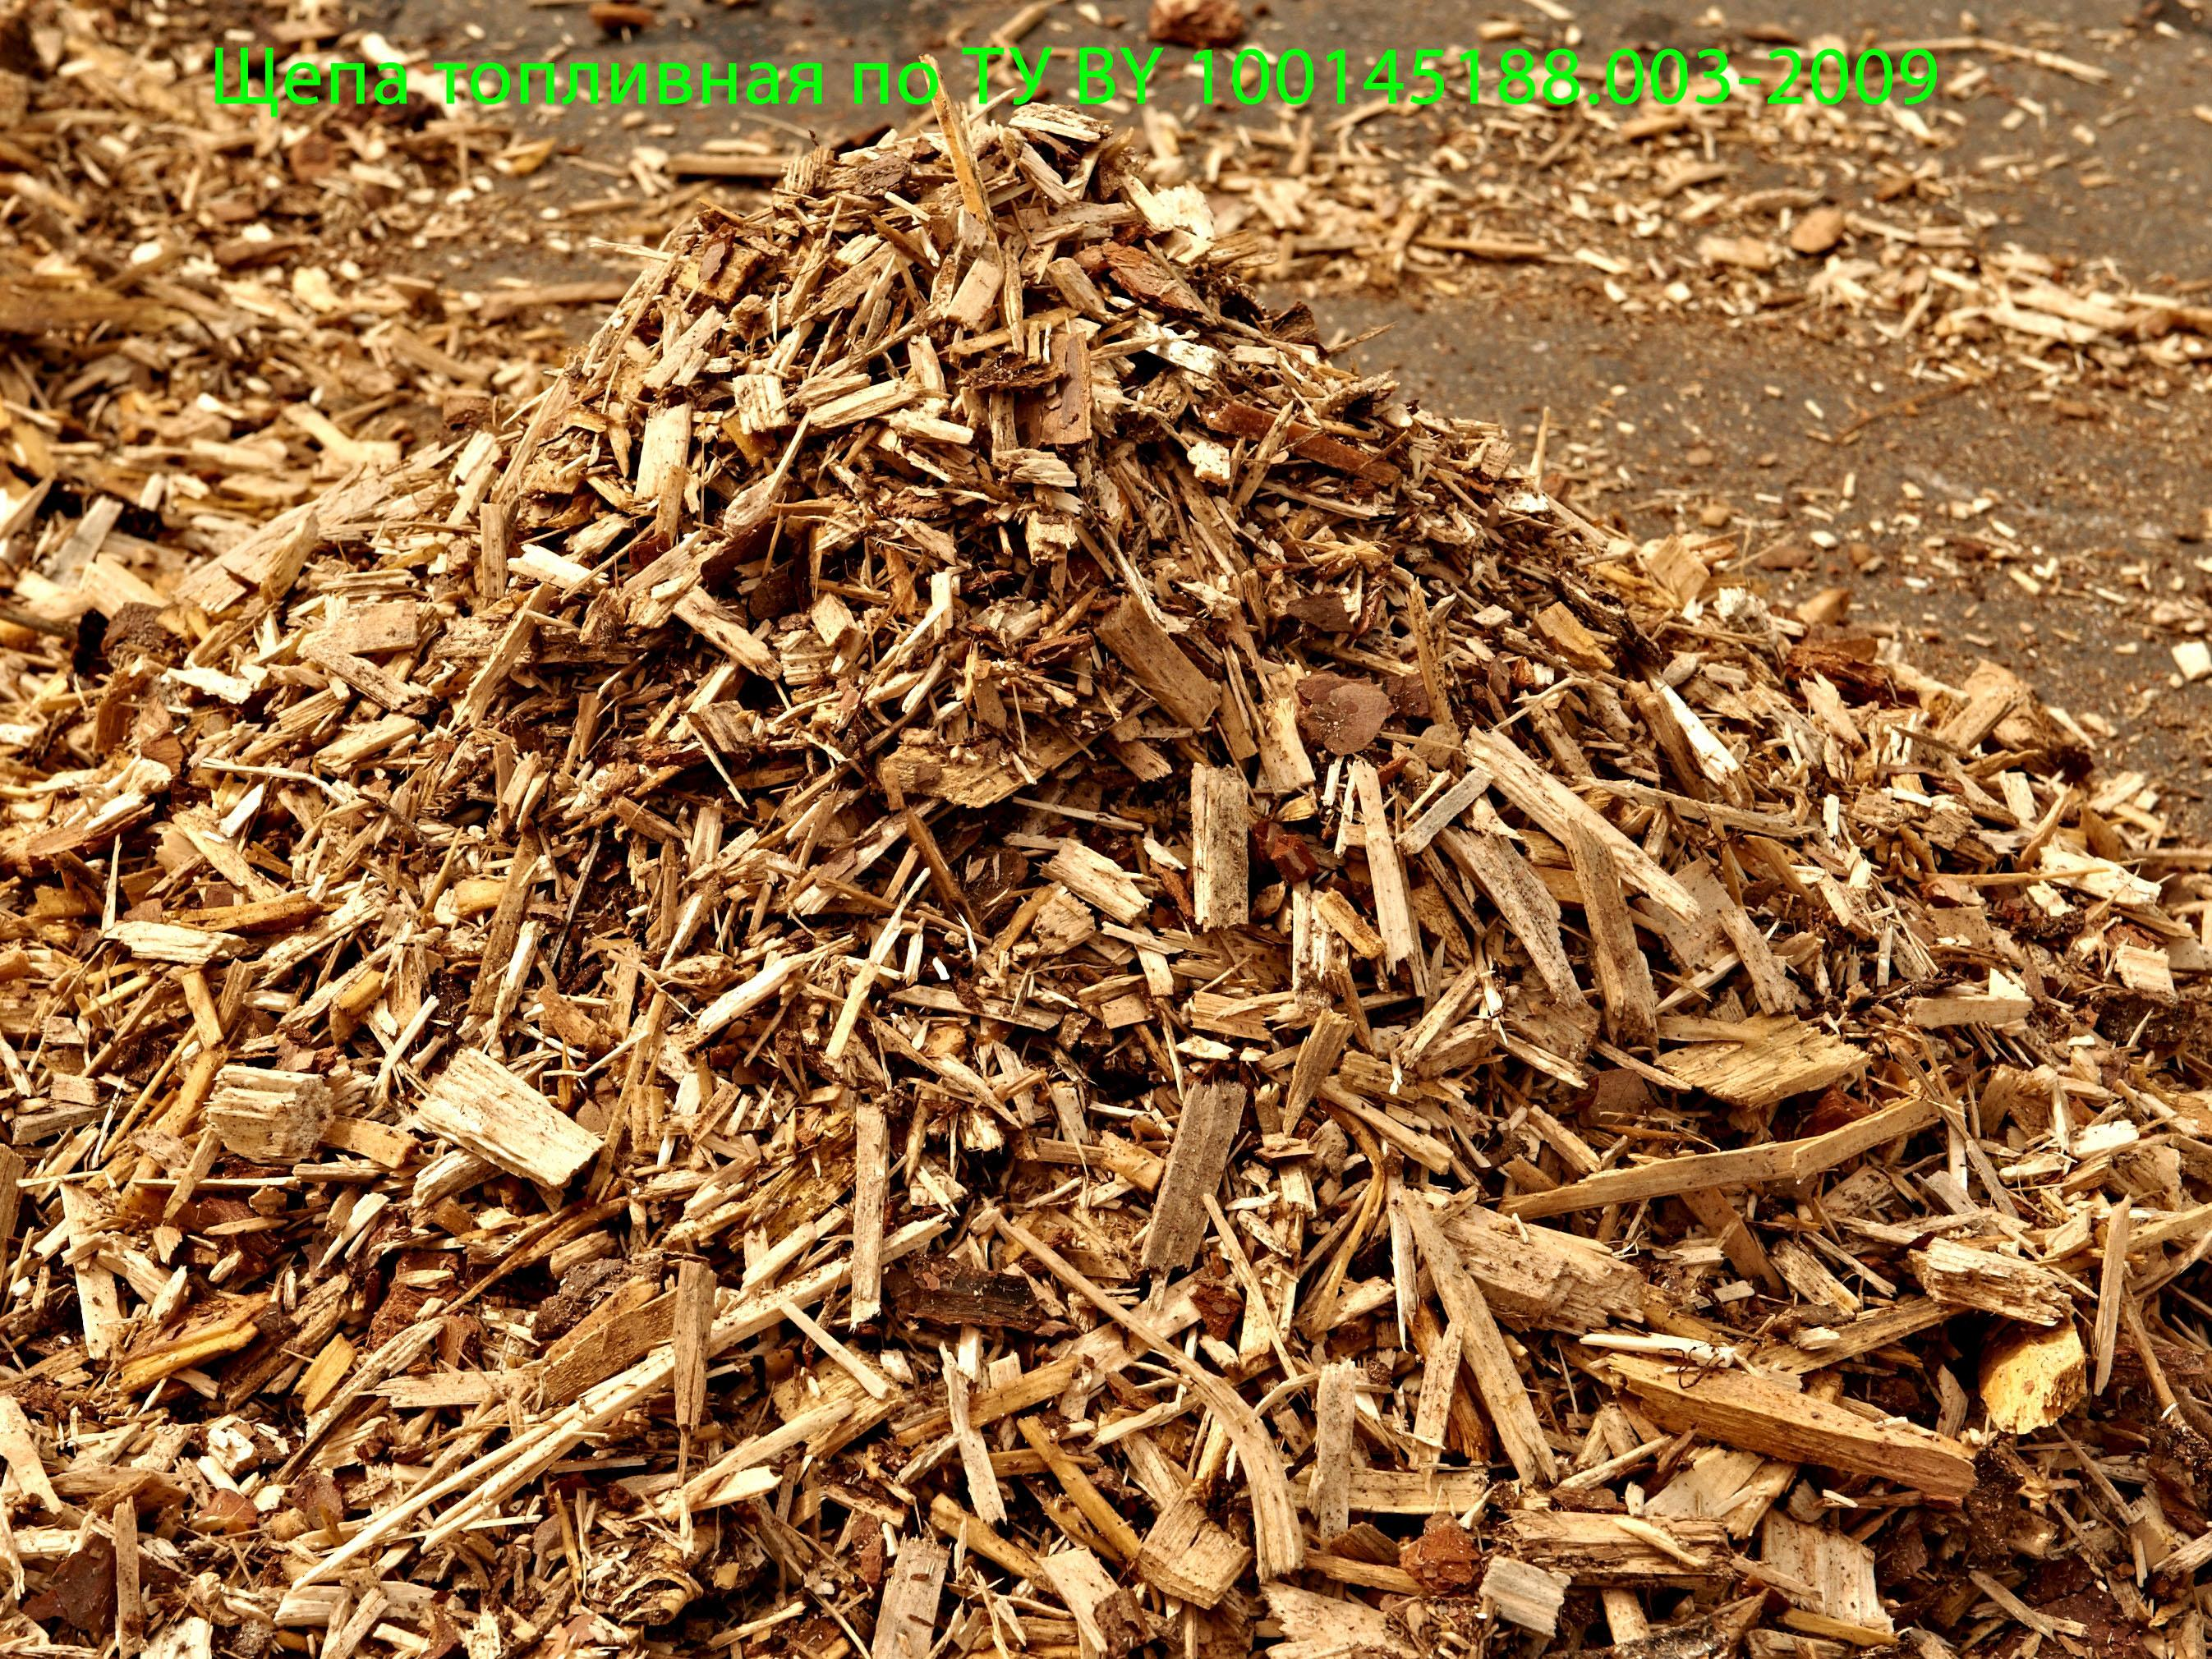 Wood chips bark off cuts sawdust shavings